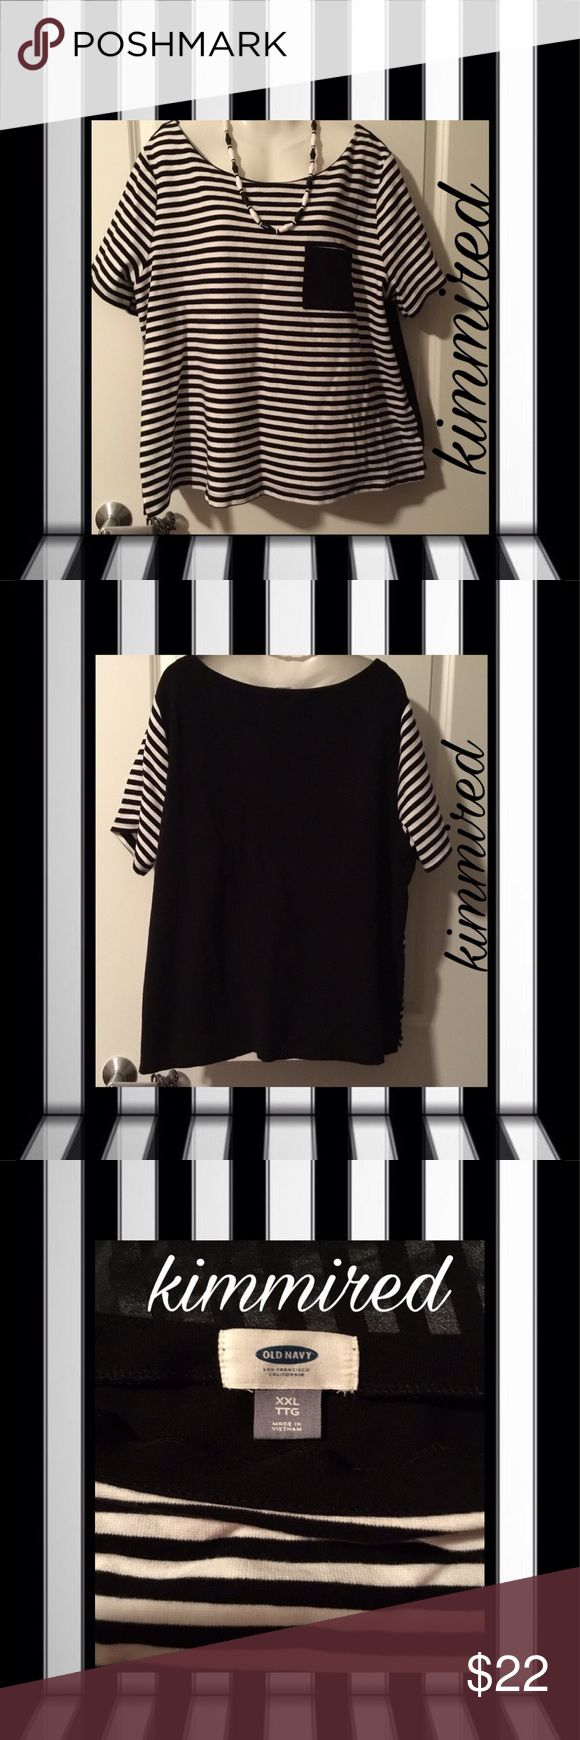 Black and white striped t shirt xxl - Old Navy Black White Striped Shirt Xxl Nwot Flats Smoke And Short Sleeves